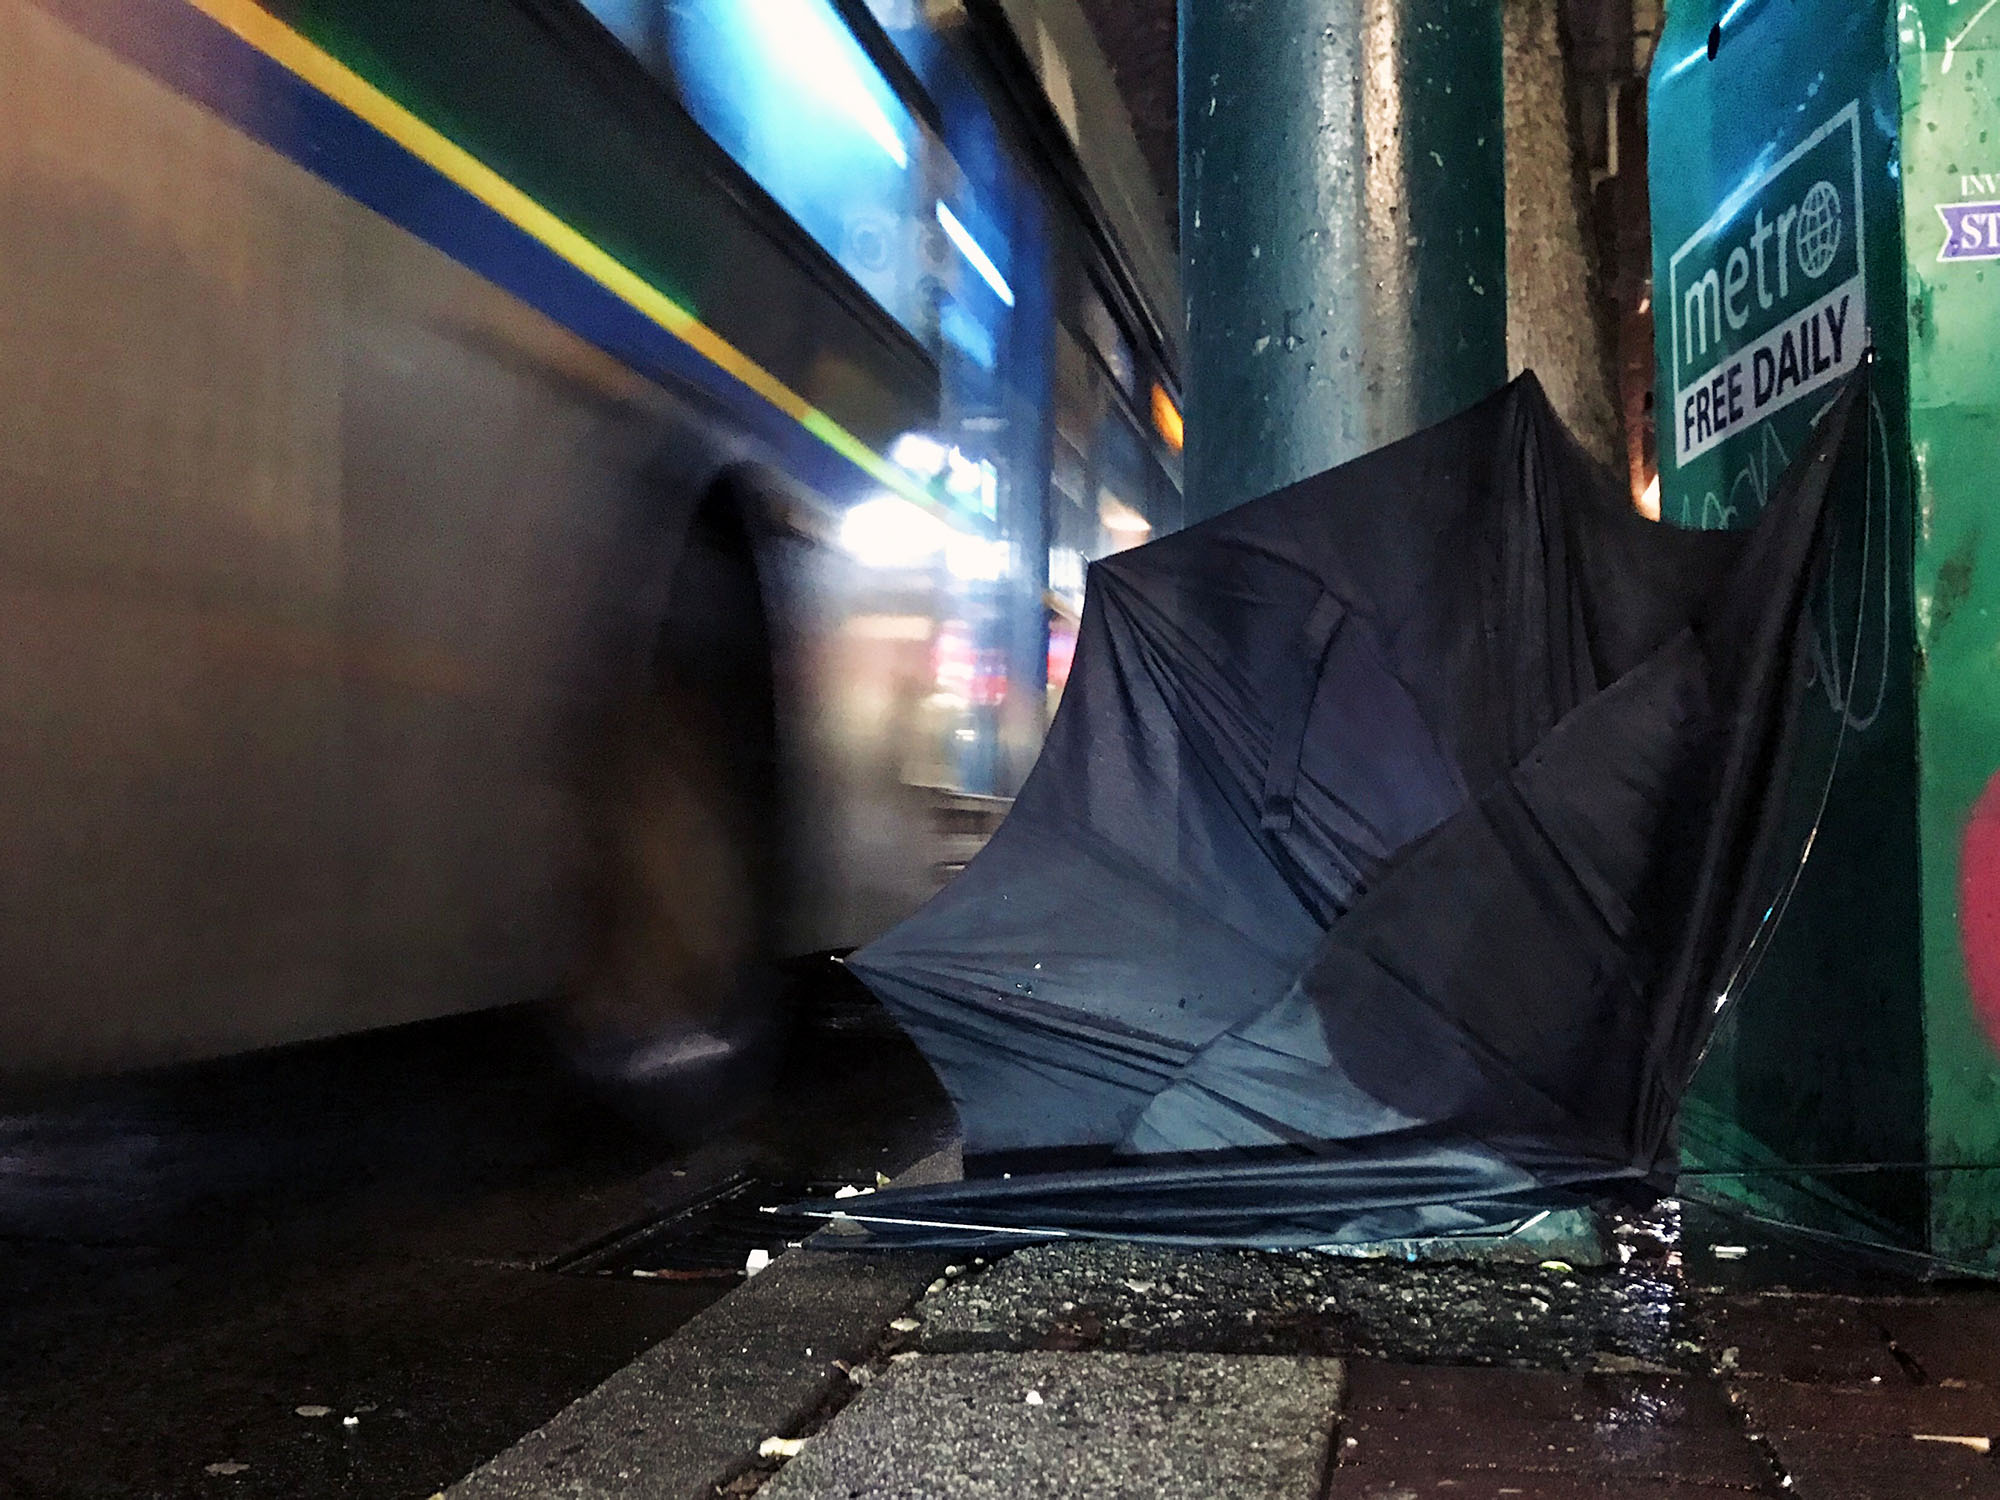 An abandoned umbrella along Hastings Street, Vancouver.